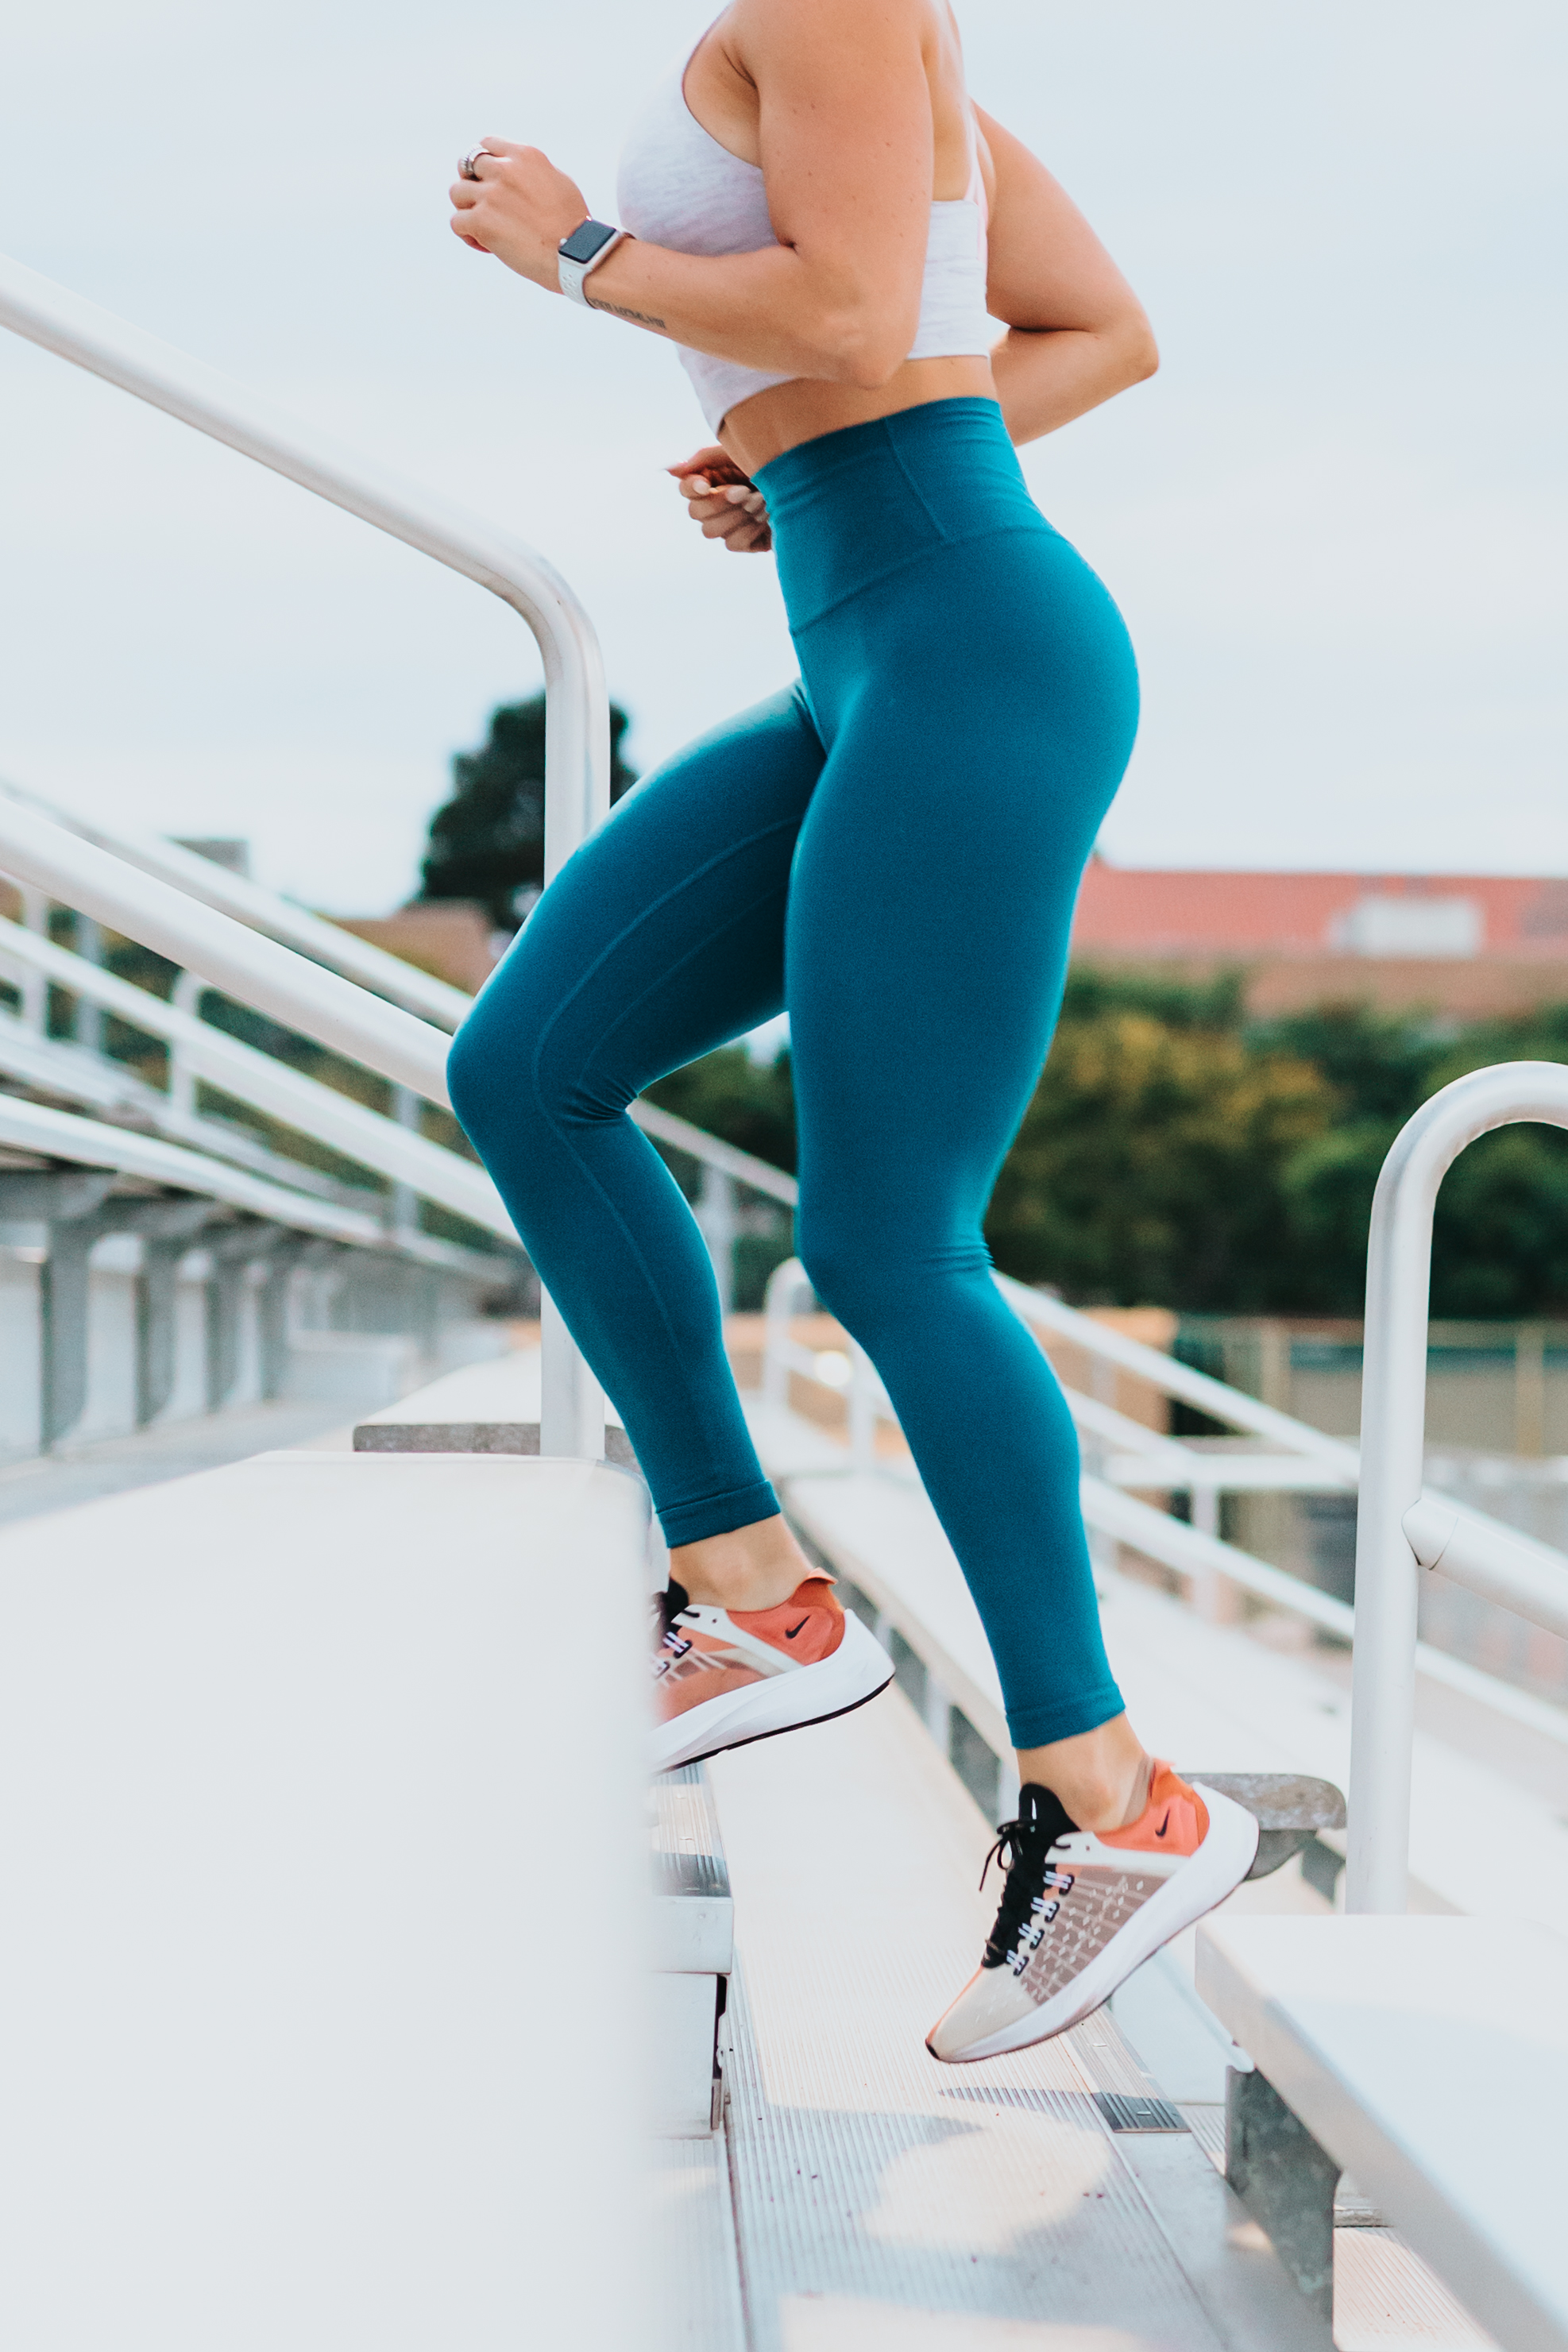 Cardio or Weights? - Both offer different benefits…